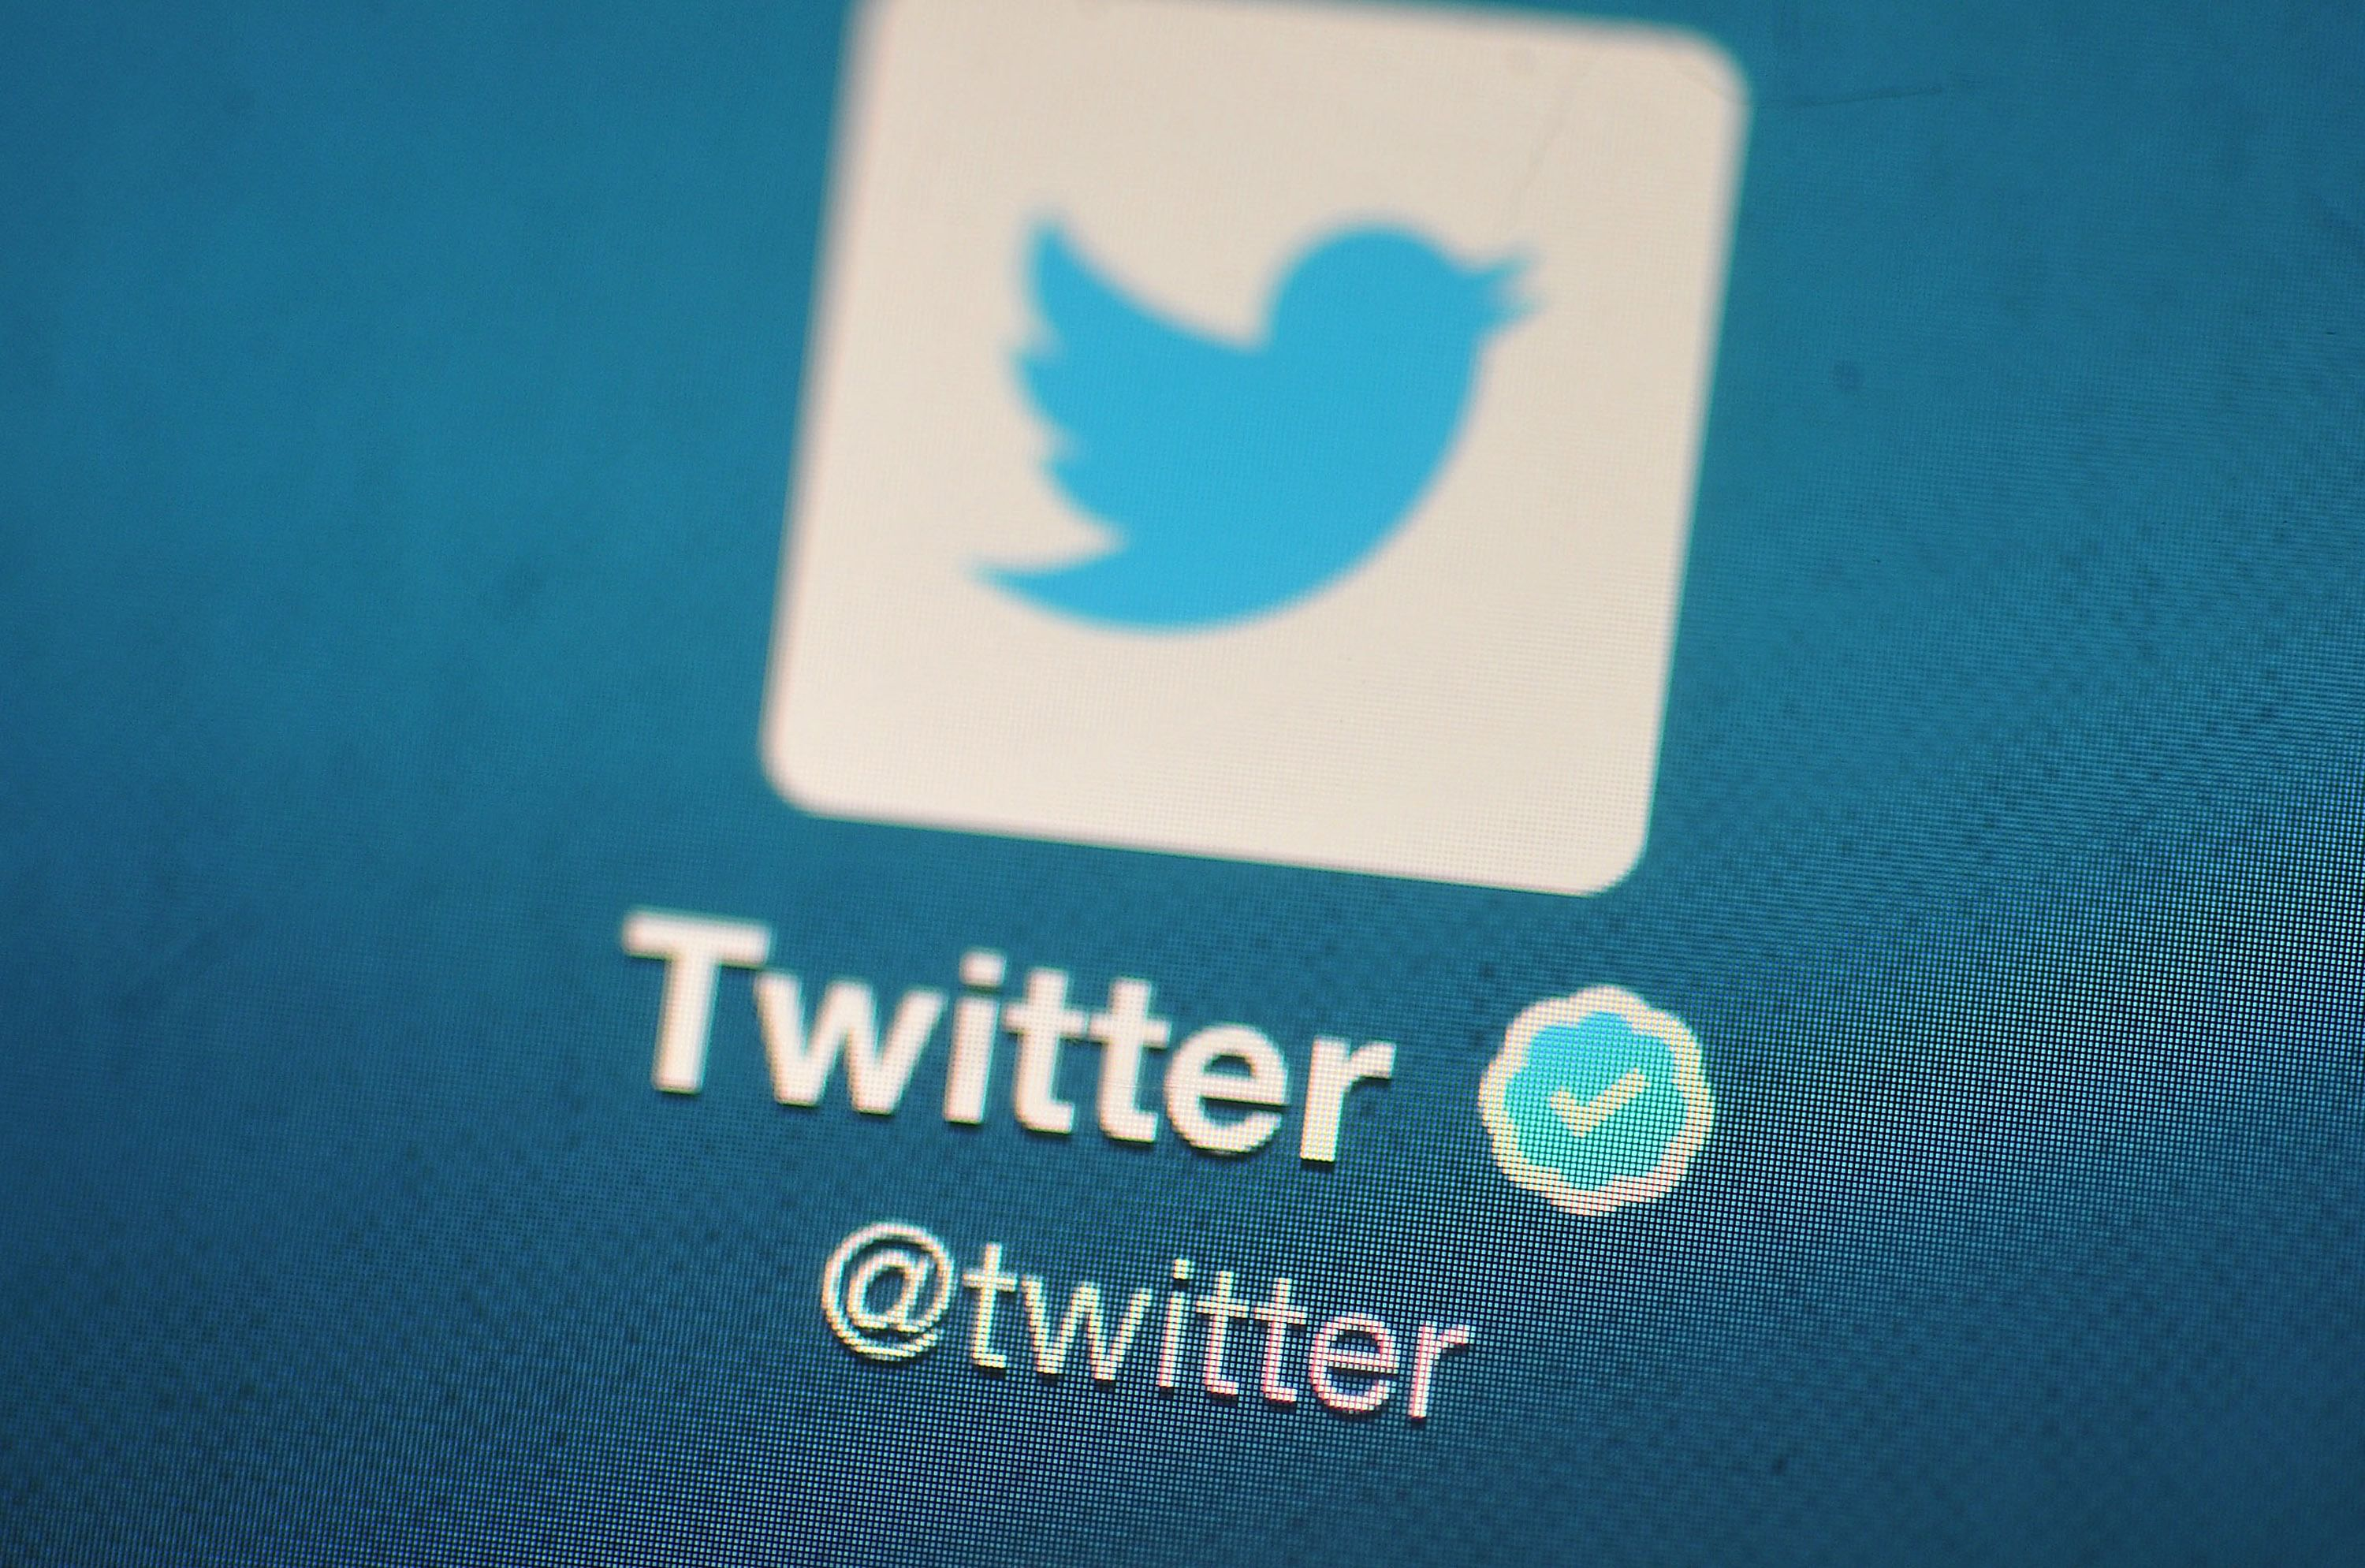 <b>Twitter</b> (TWTR) Put Options Priced for Low Risk of Drop thumbnail